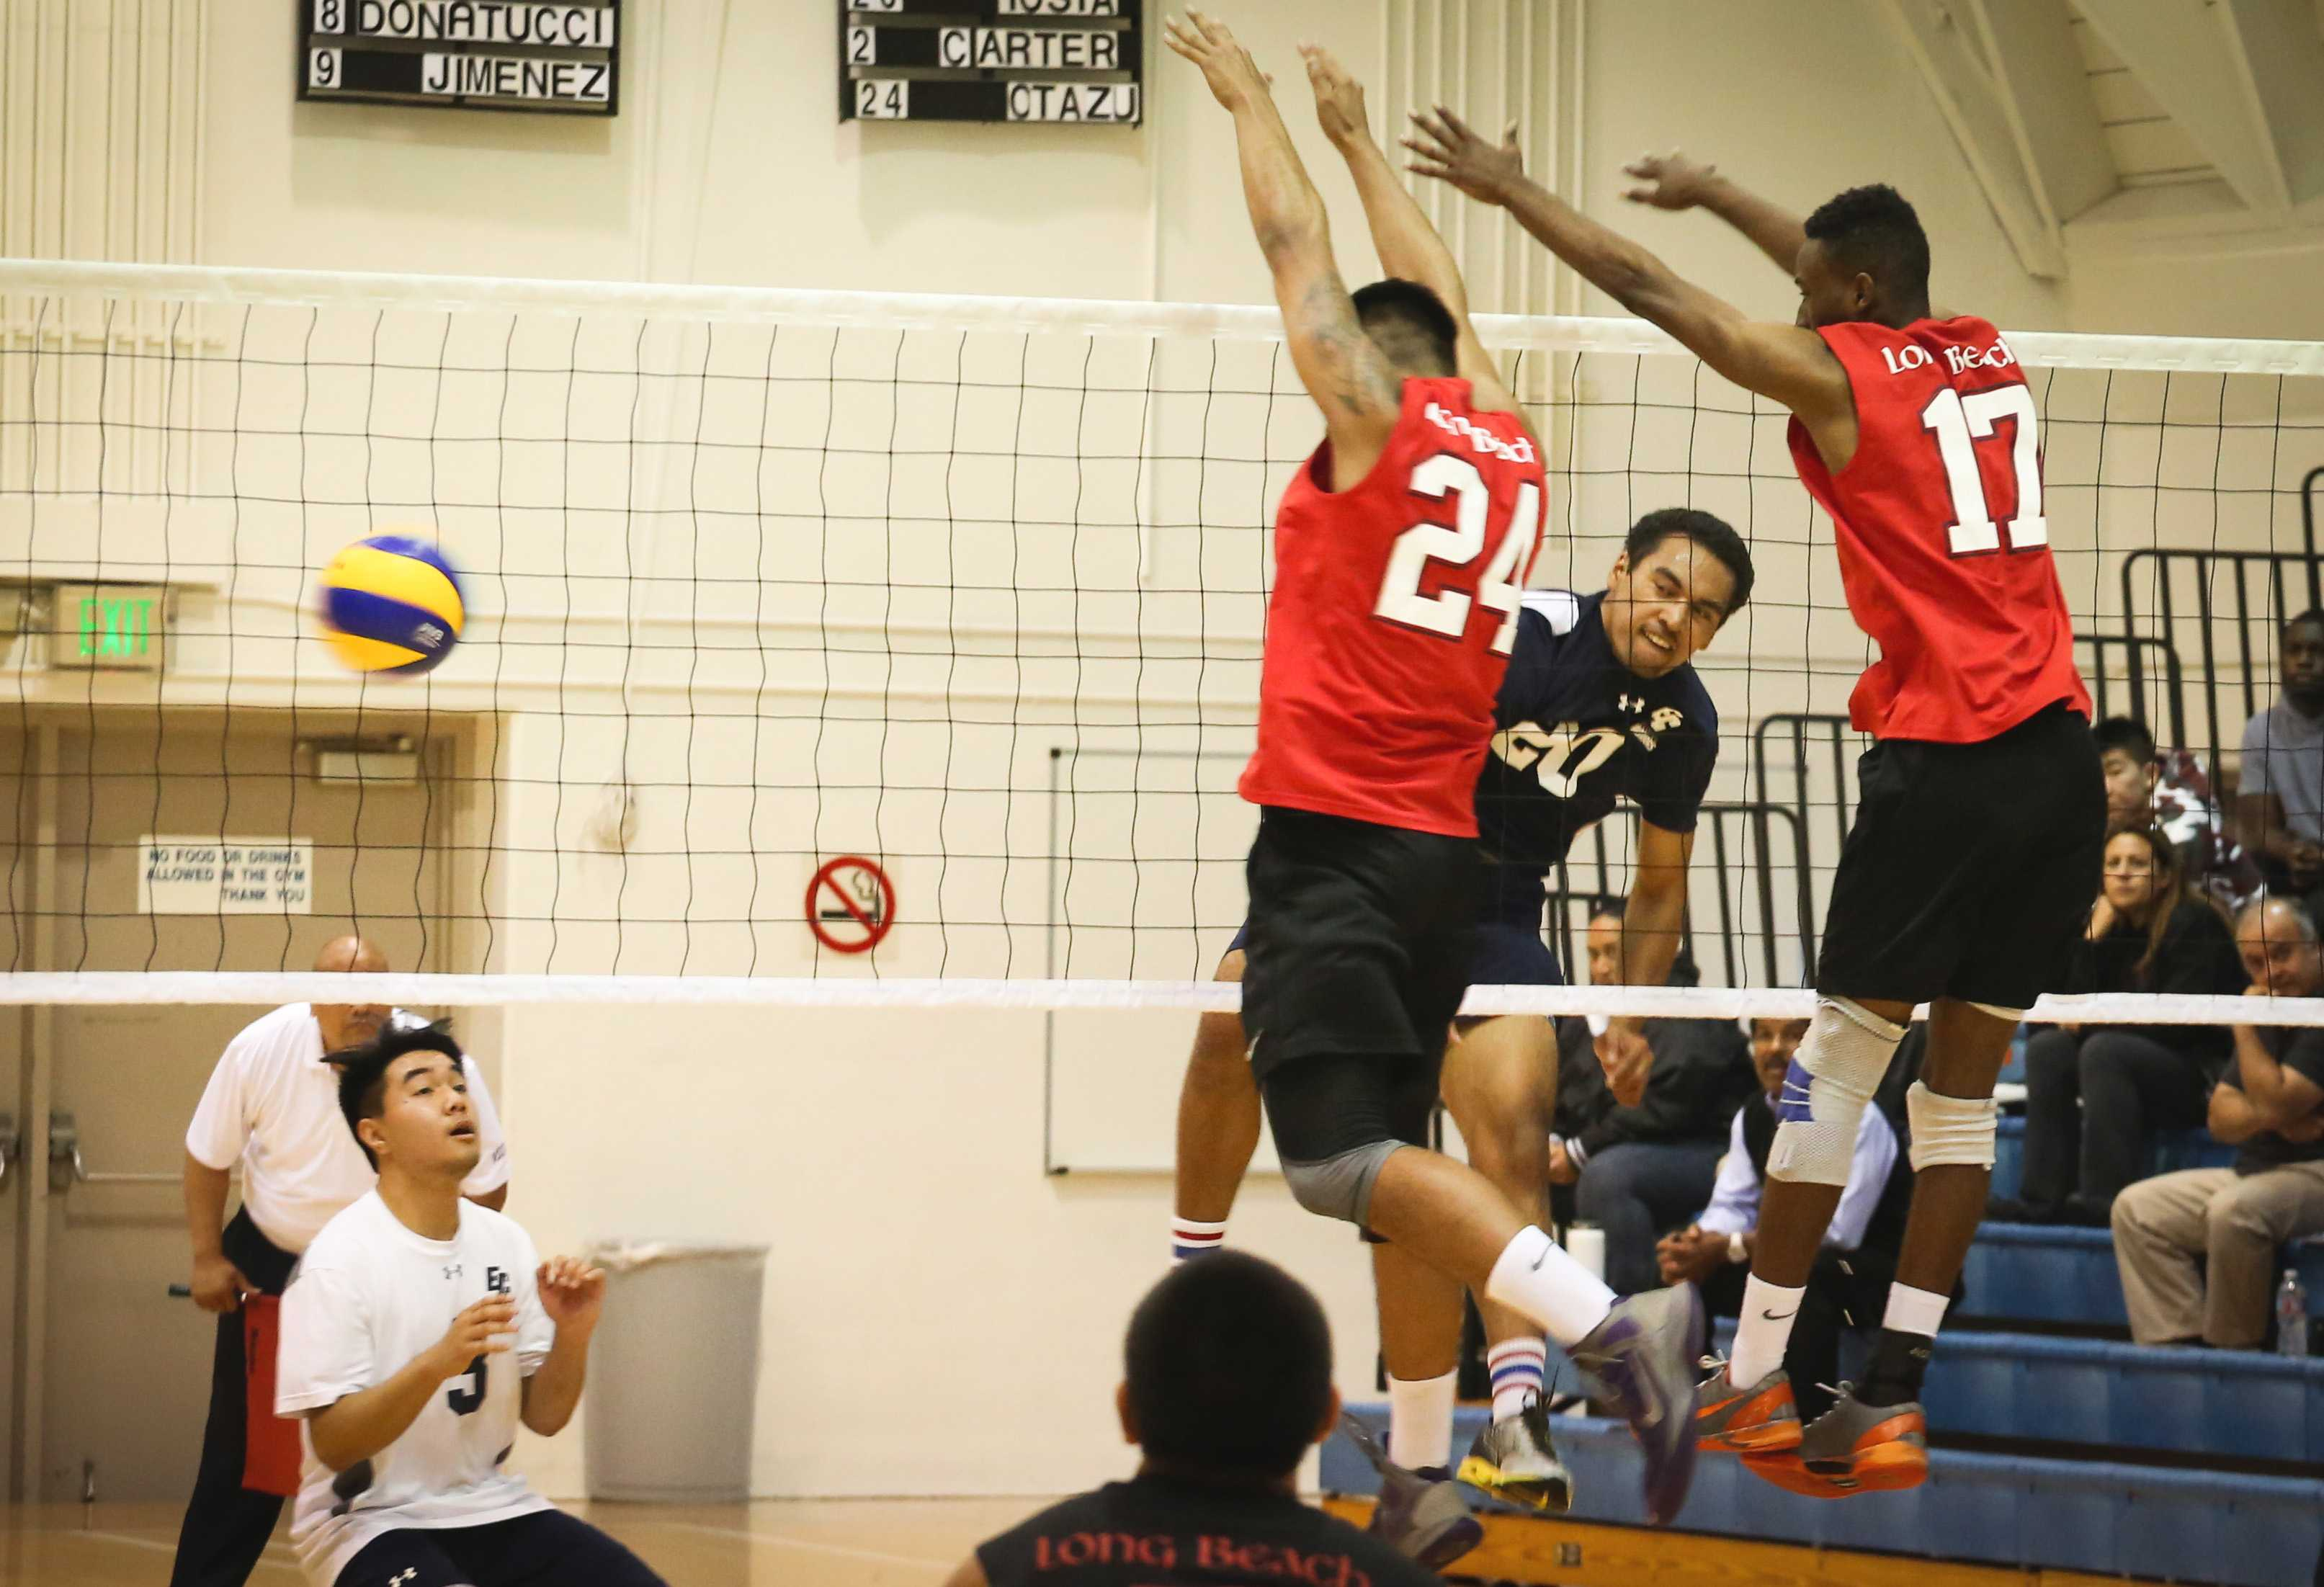 Early-game struggles continue for men's volleyball team in loss against Long Beach City College